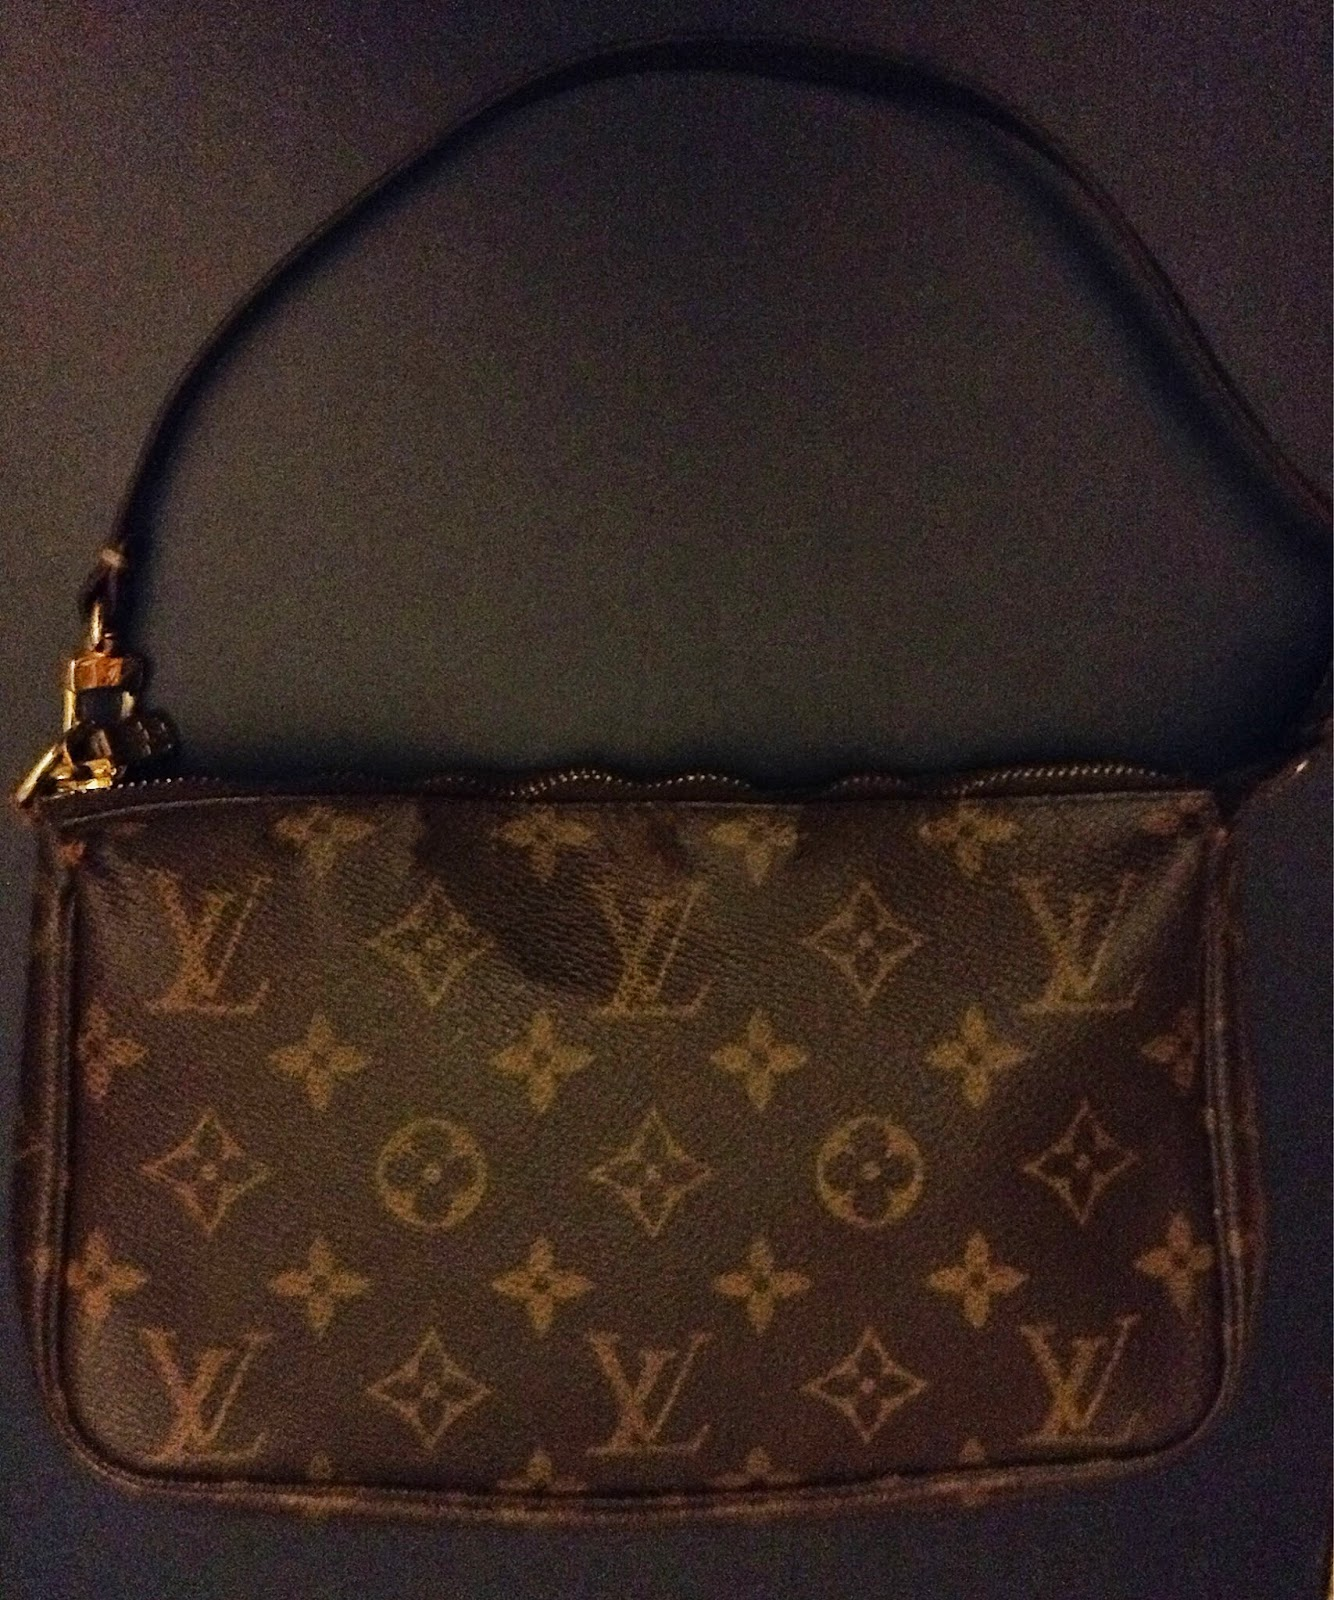 Here's a full picture of my pochette. On all Louis Vuitton bags in monogram  print, none of the LV monograms should be cut off on the sides.